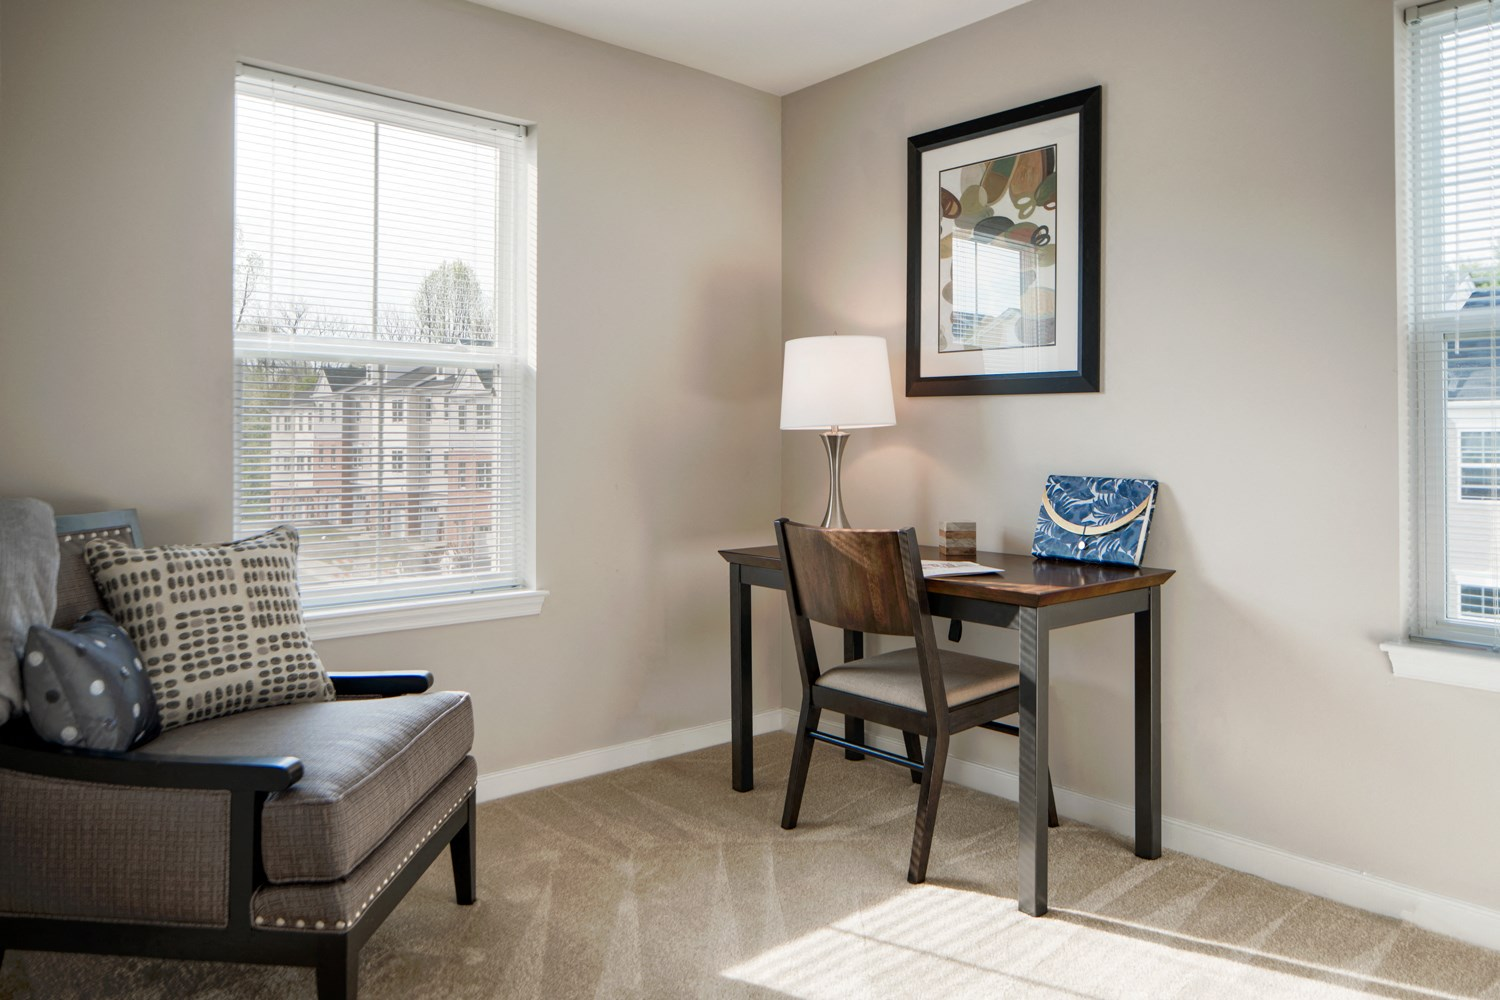 Den In all Apartments at Townes at Pine Orchard, Ellicott City, 21042